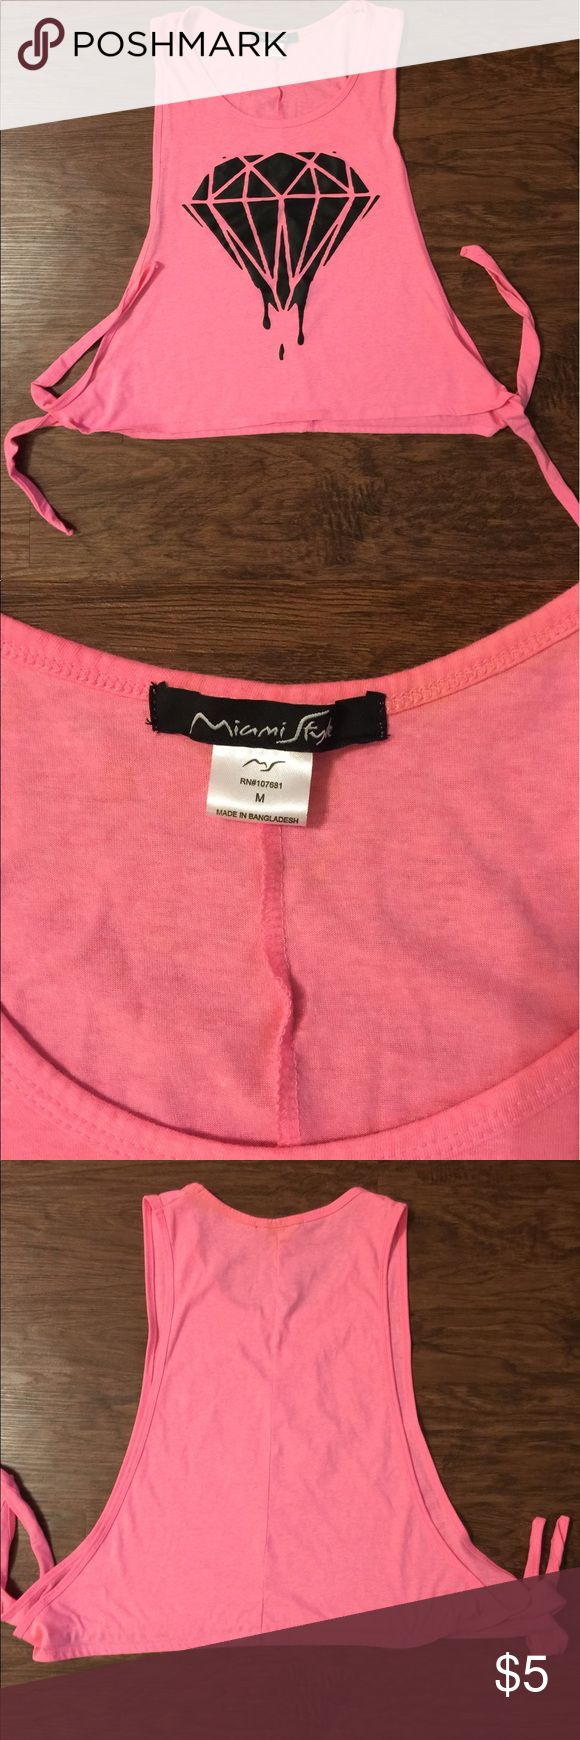 Hot Pink Shirt Hot Pink Shirt, Tie Sides, No sides, it ties together. Diamond design on the front. Never worn Tops